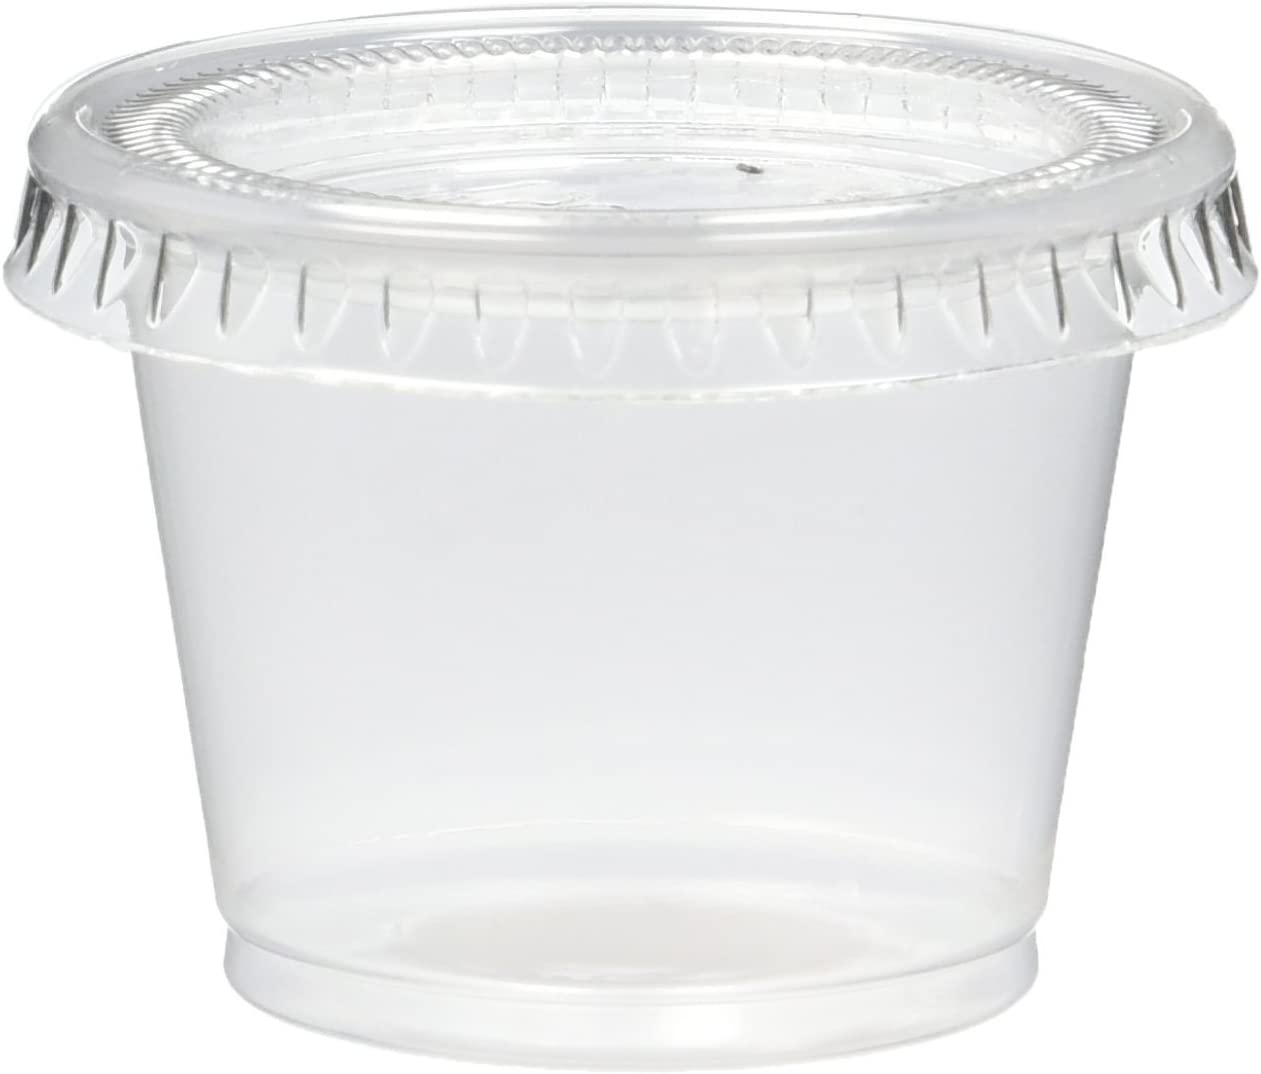 Mr. Miracle Jello Shot Cups Sacramento Fees free!! Mall and Lids. 125 Ounce. Pack of 1